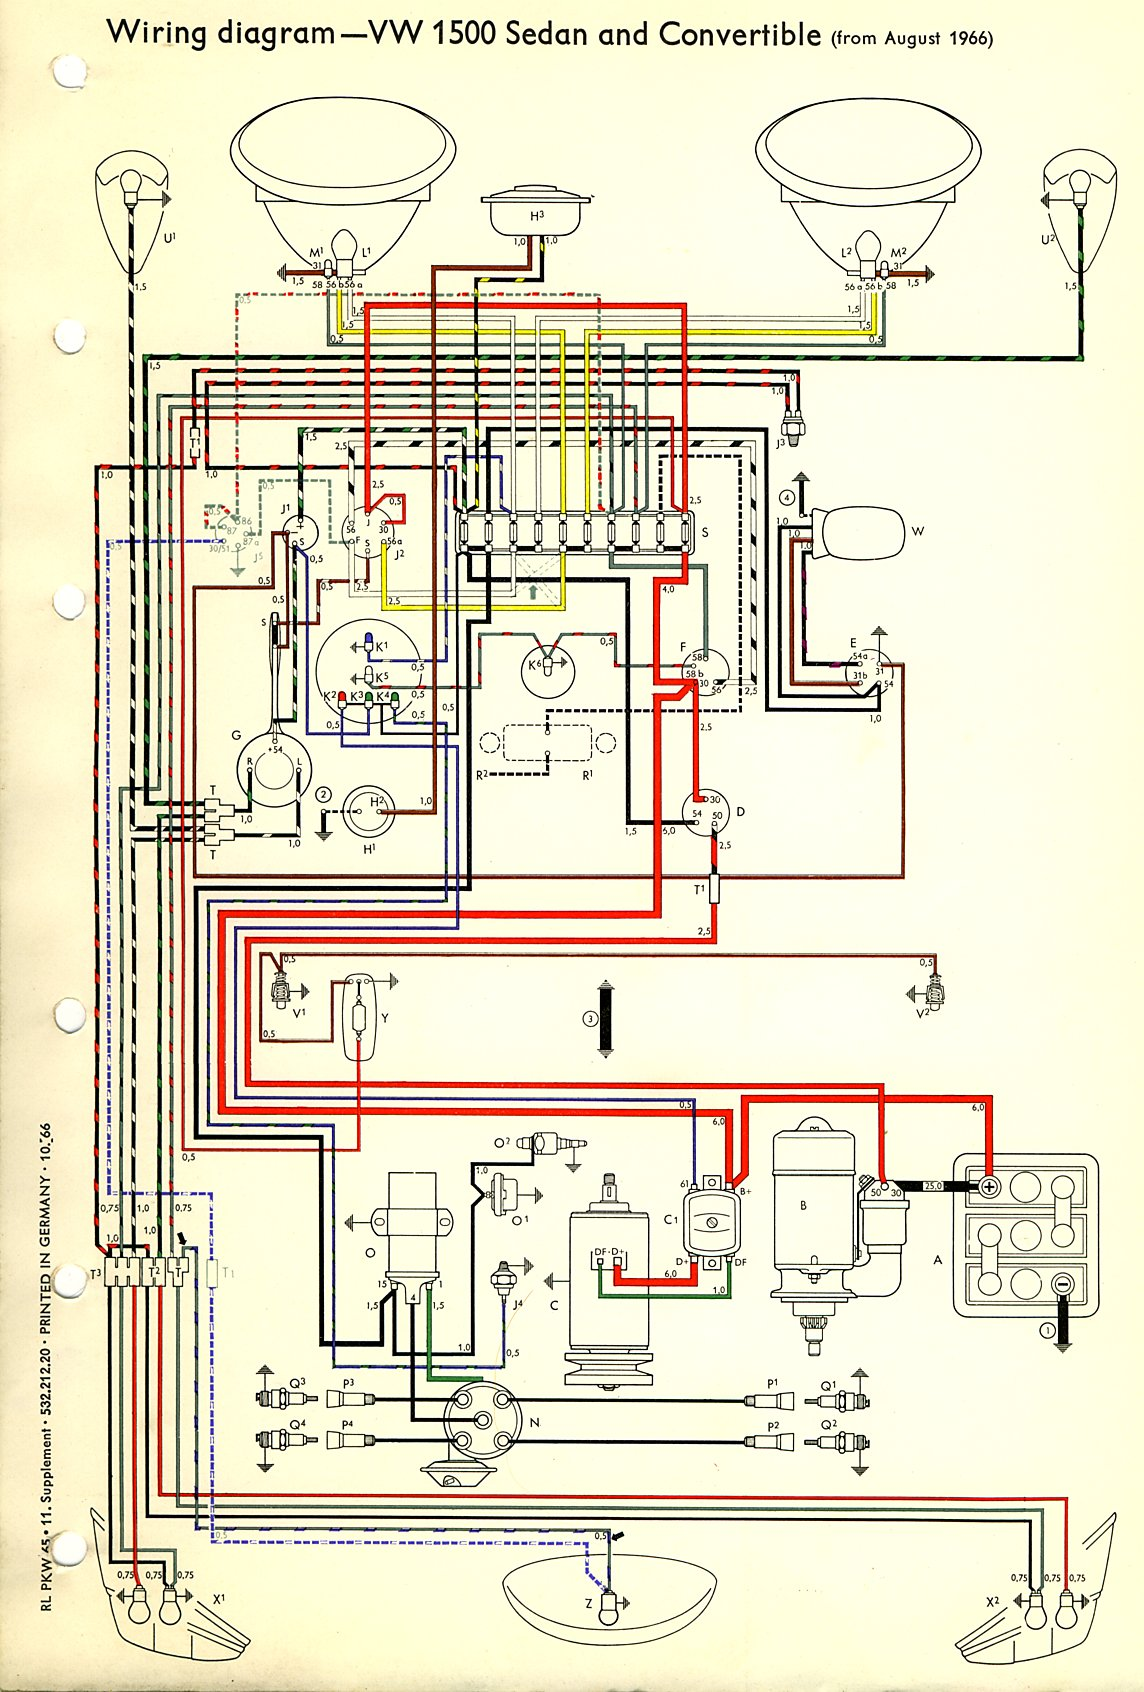 bug_67 1967 beetle wiring diagram thegoldenbug com vw golf 3 electrical wiring diagram at mifinder.co